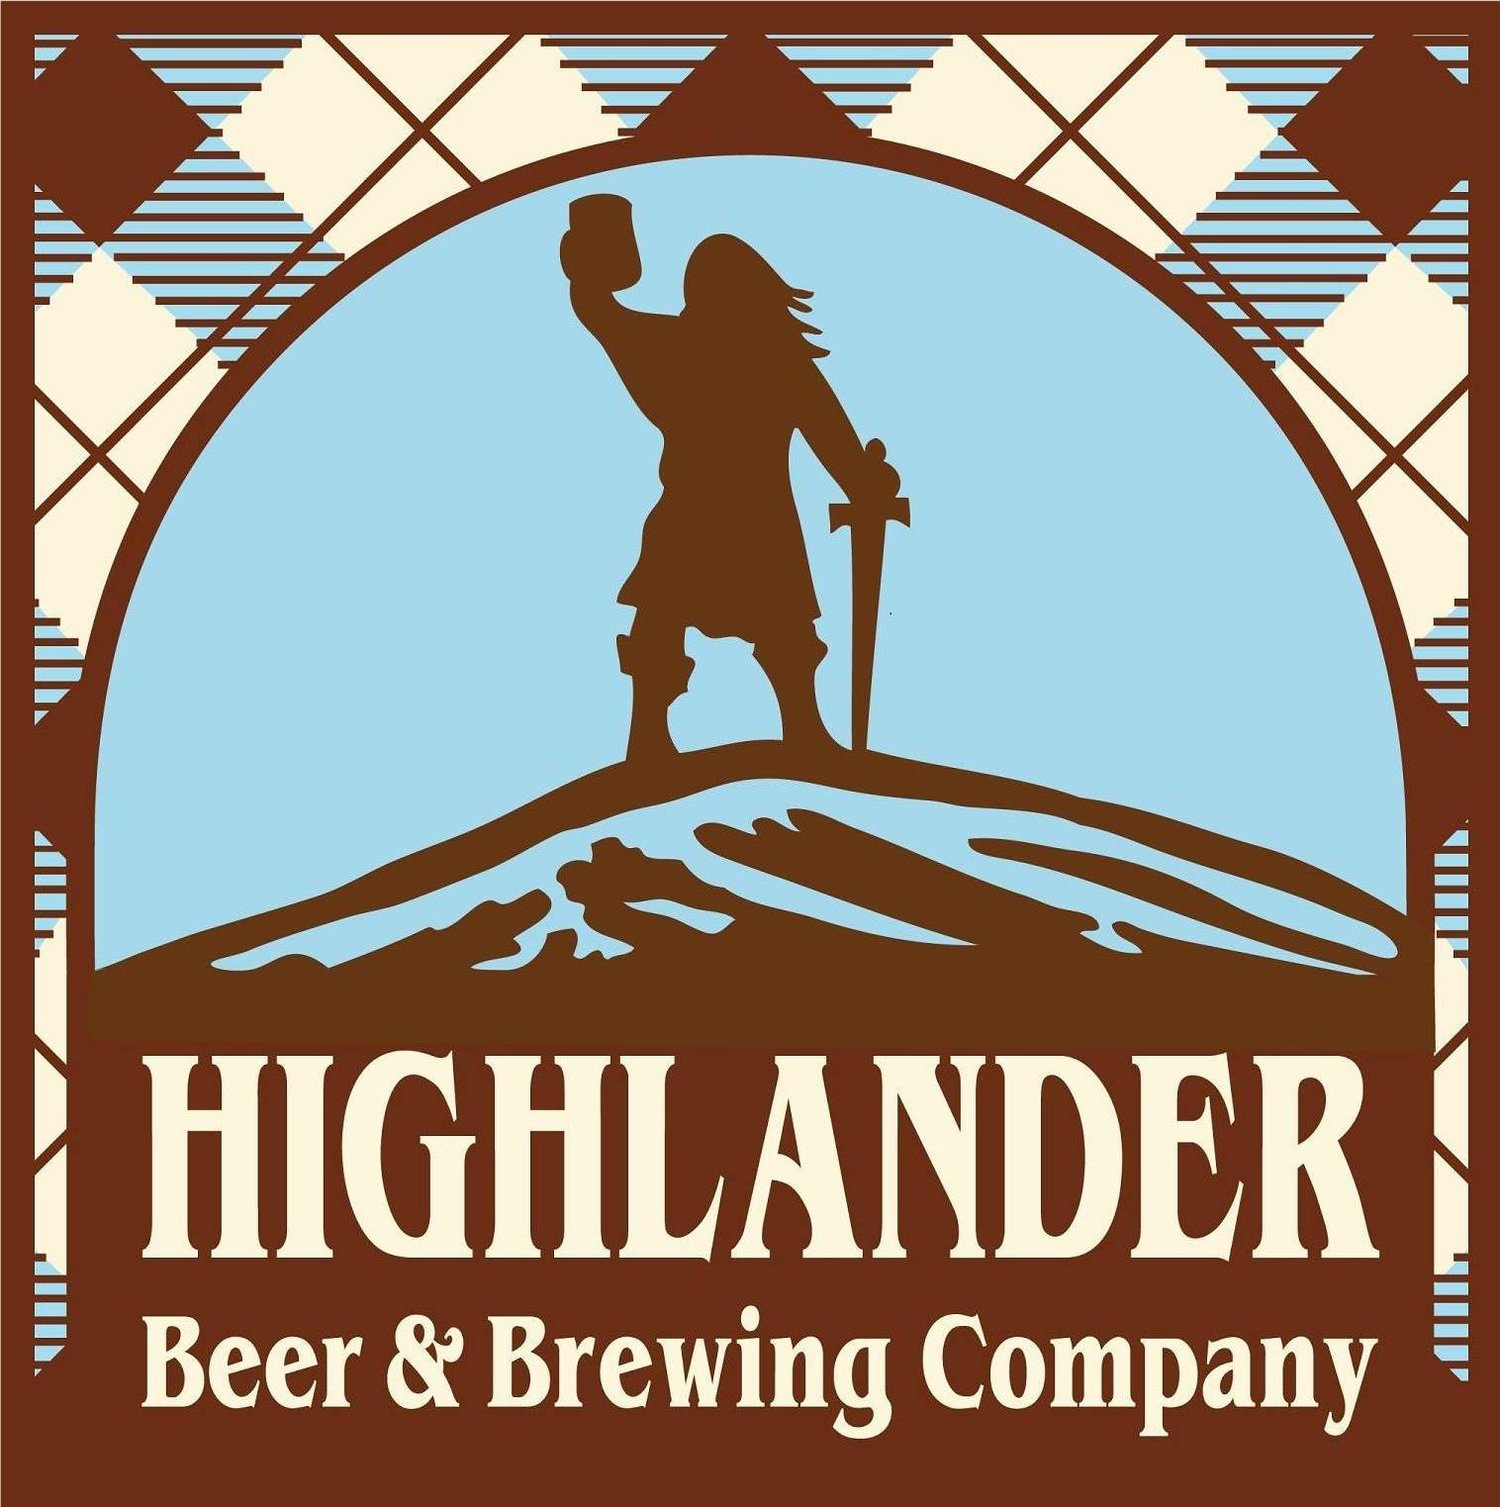 Highlander Beer & Brewing Company